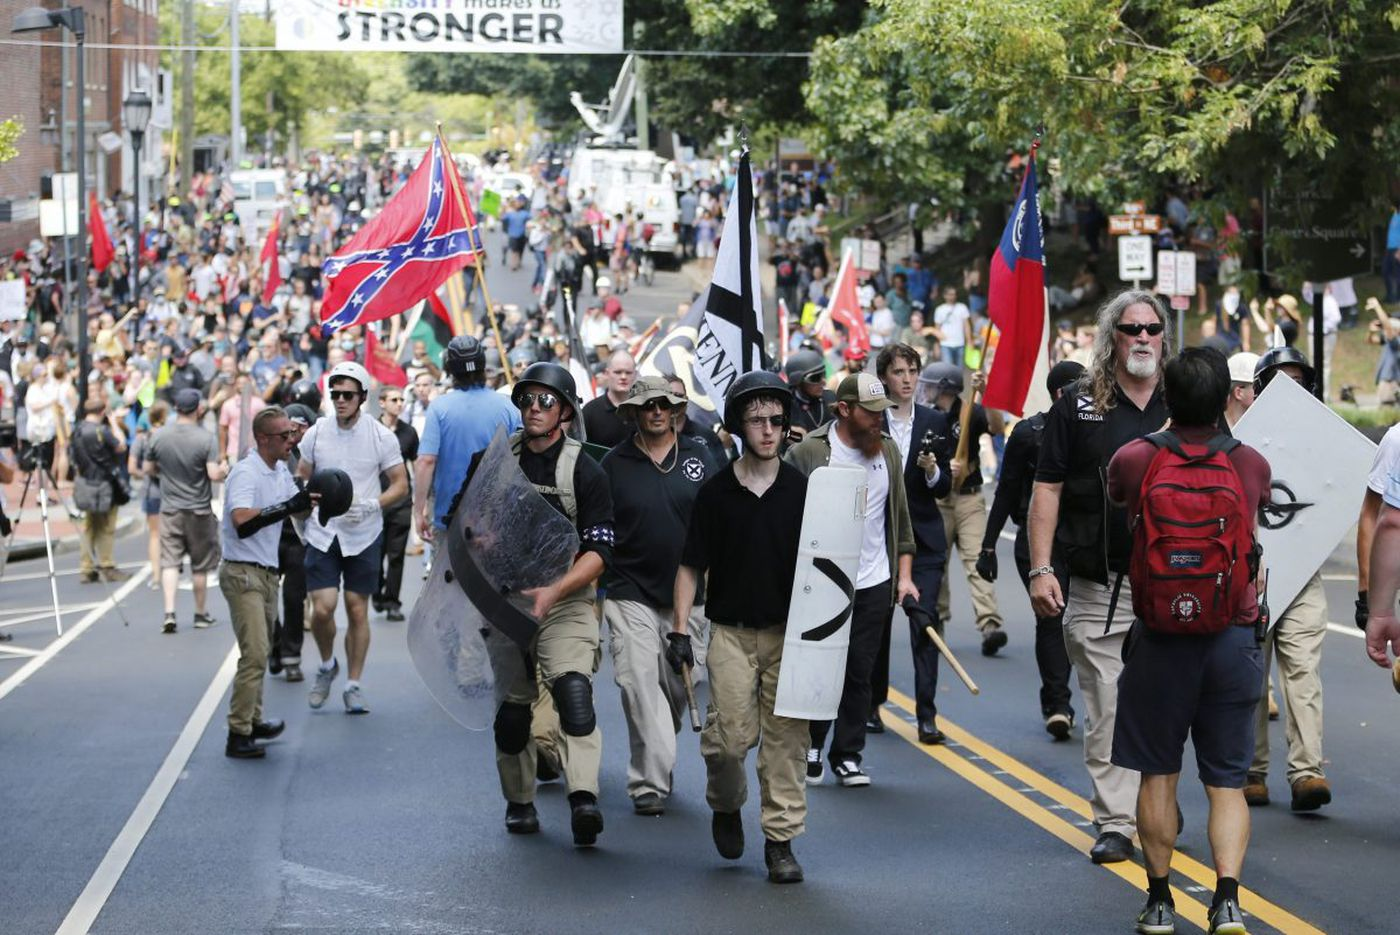 Organizer of Charlottesville right-wing rally gets approval for anniversary event in DC